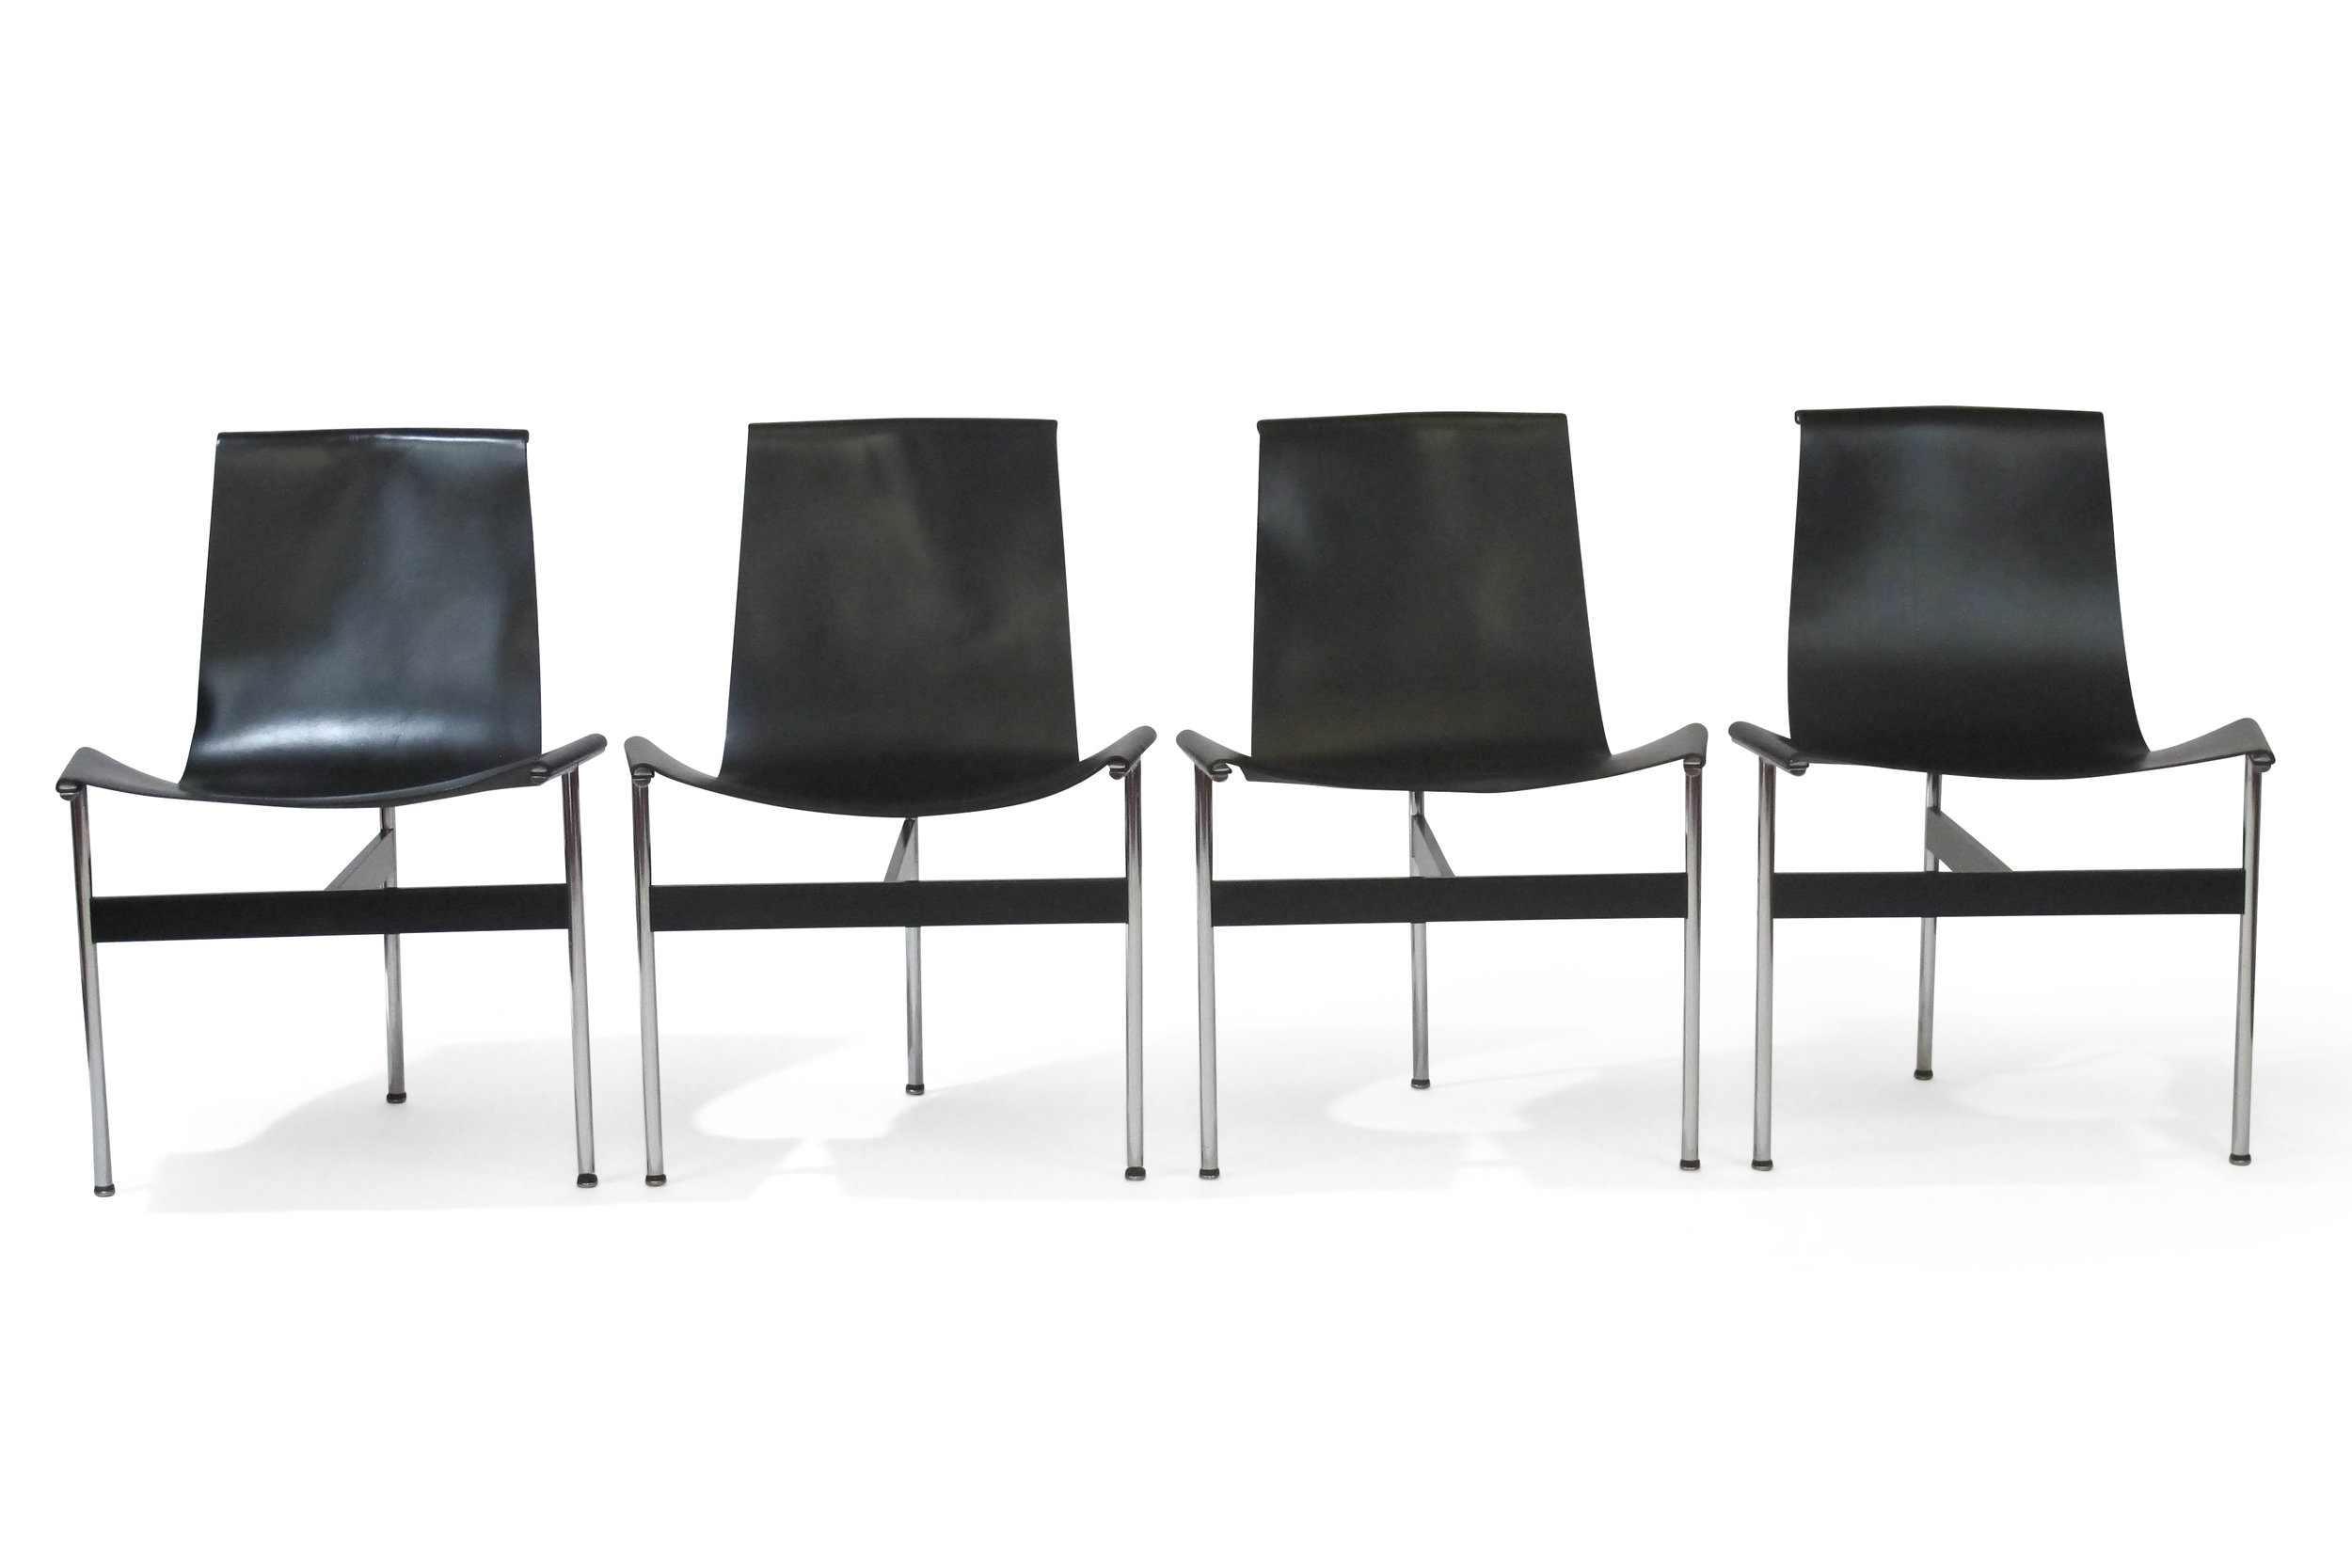 Four T Chairs By Katavolos Littel Kelly For Laverne In Black